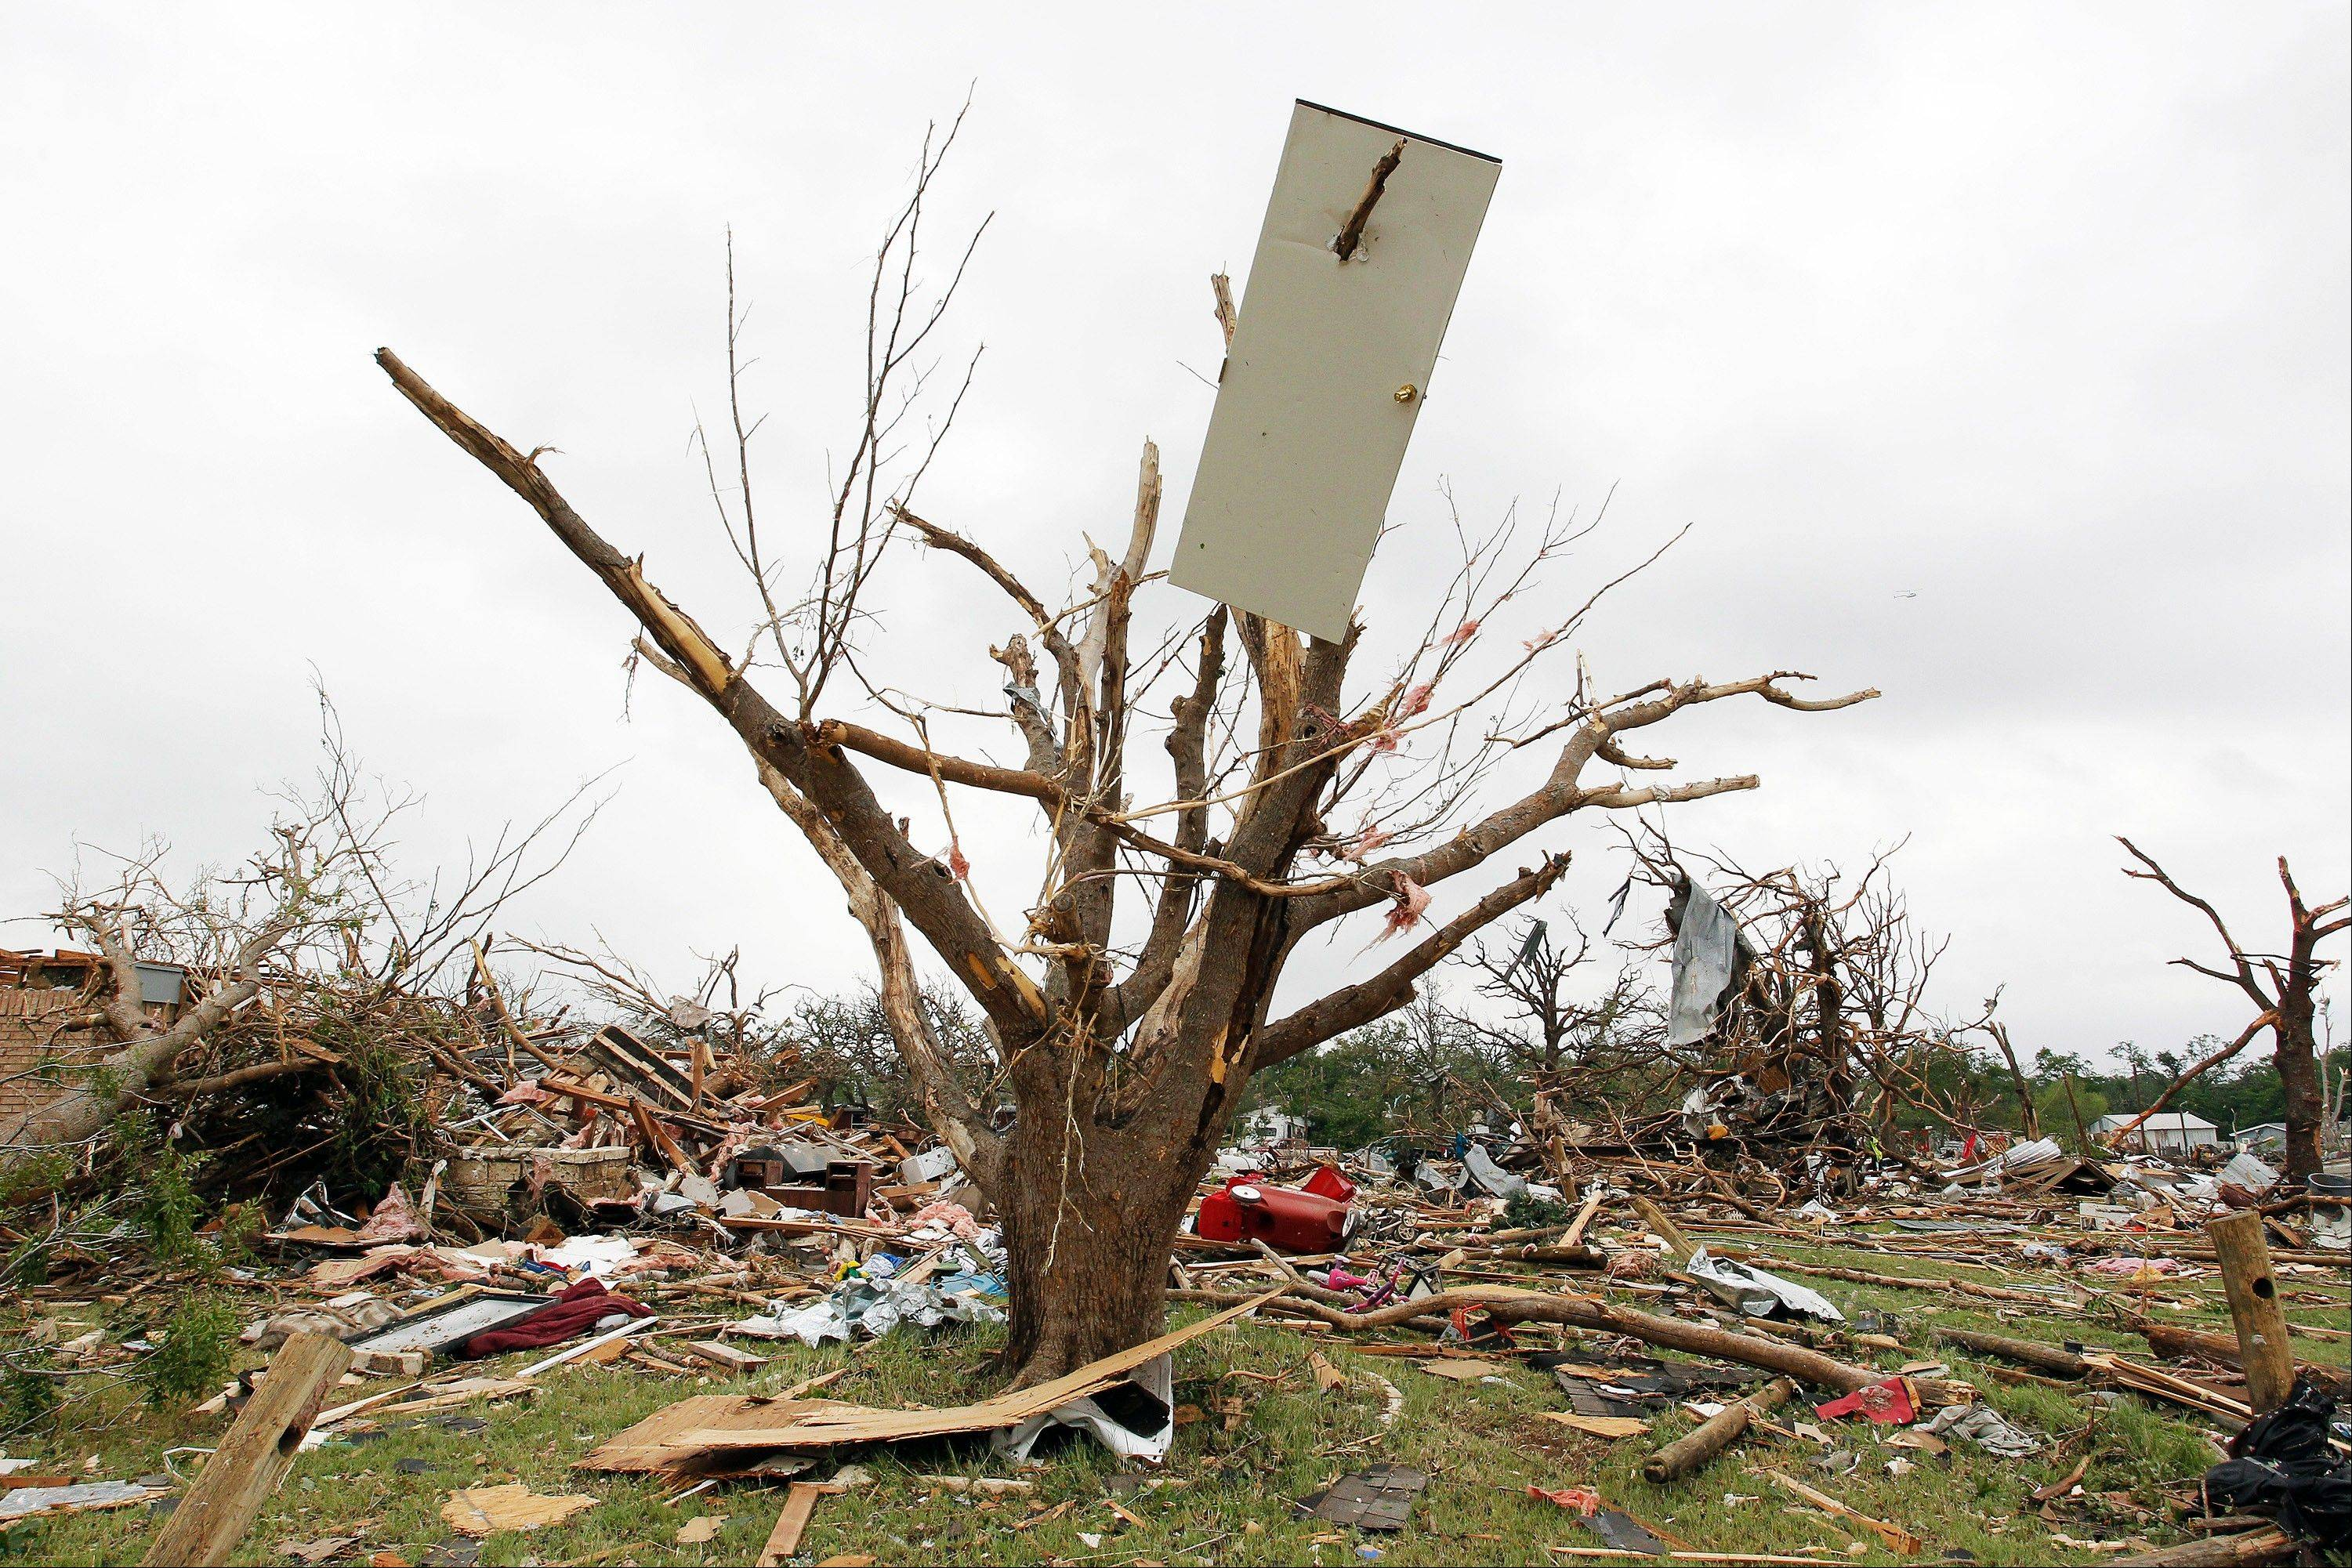 A door from a house hangs from a tree limb in the destroyed Rancho Brazos neighborhood of Granbury, Texas, Thursday, May 16, 2013. Ten tornadoes touched down in several small communities in North Texas overnight, leaving at least six people dead, dozens injured and hundreds homeless. Emergency responders were still searching for missing people Thursday afternoon.